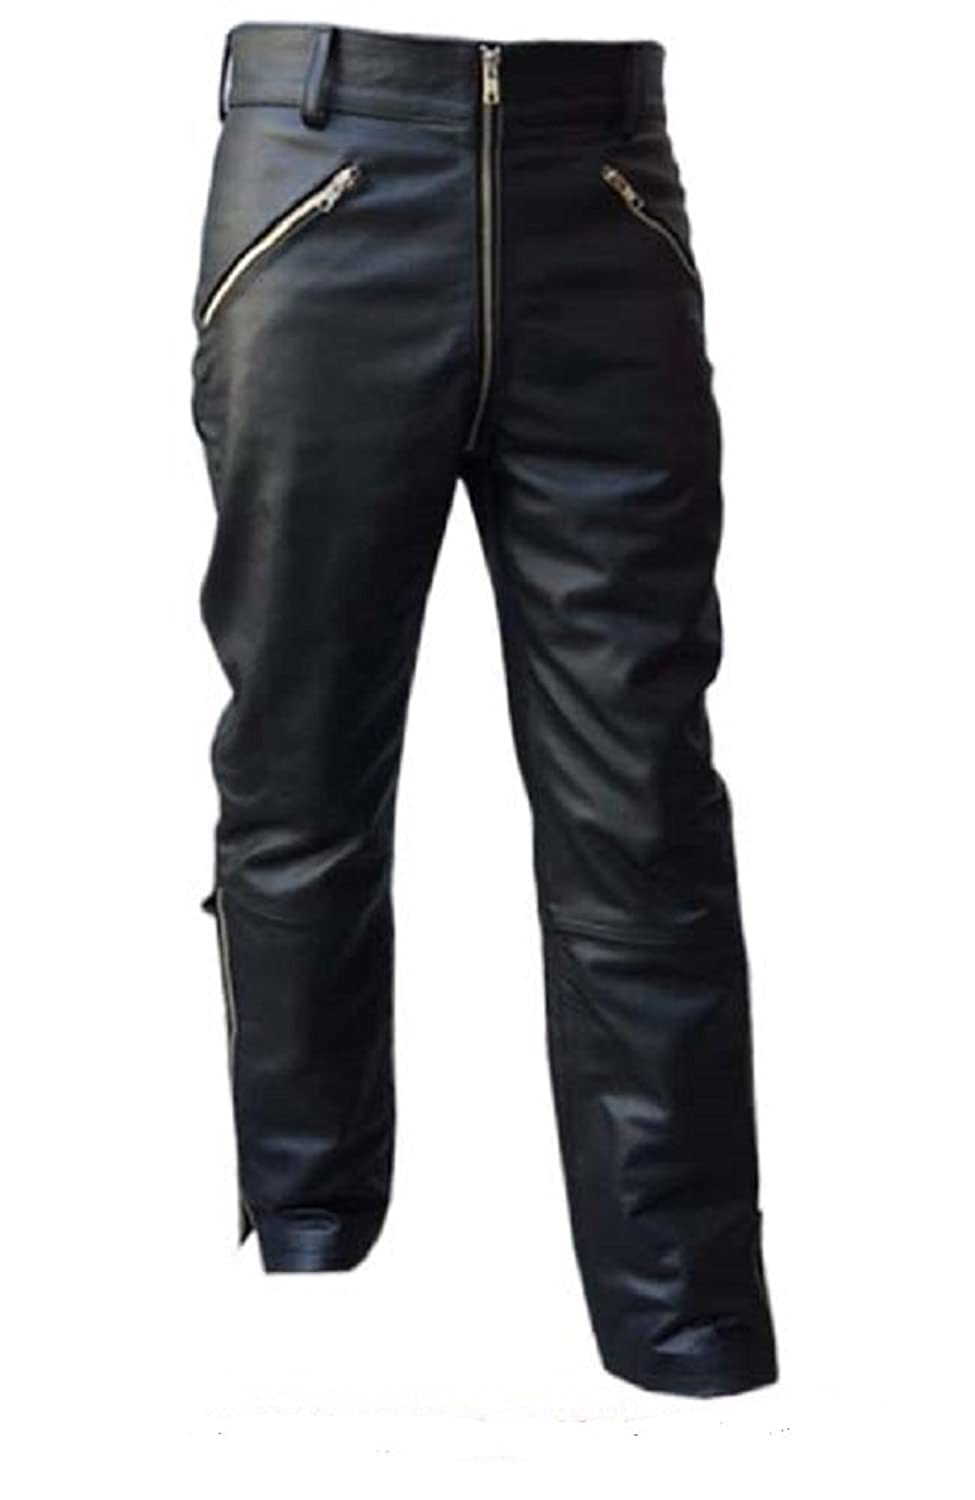 MENS SEXY REAL BLACK LEATHER MOTORCYCLE BIKERS PANTS